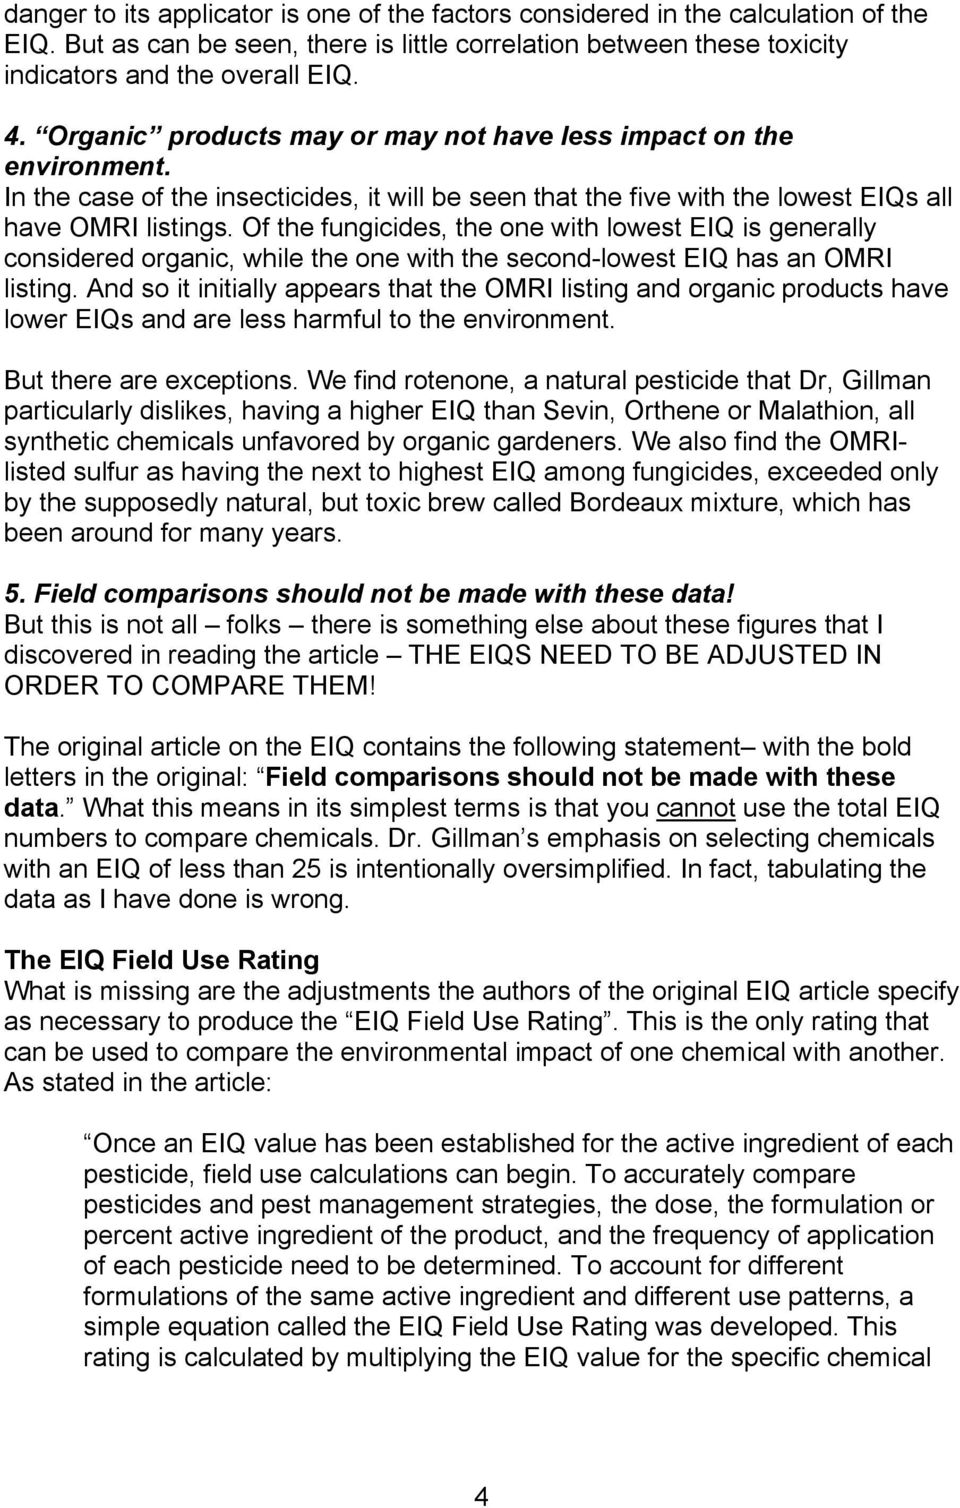 Of the fungicides, the one with lowest EIQ is generally considered organic, while the one with the second-lowest EIQ has an OMRI listing.